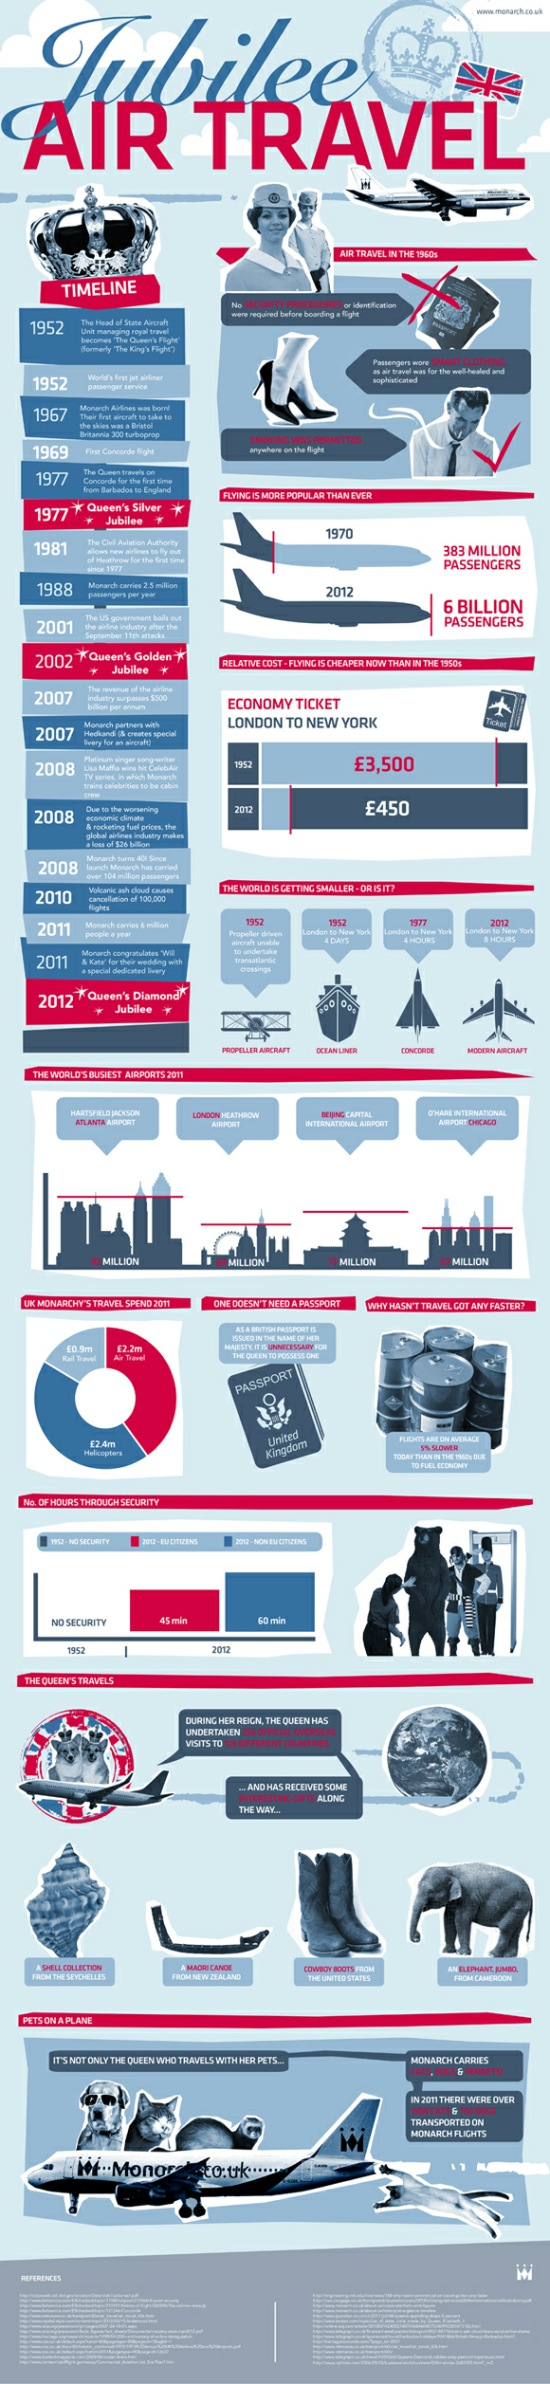 Jubilee-Air-Travel-infographic